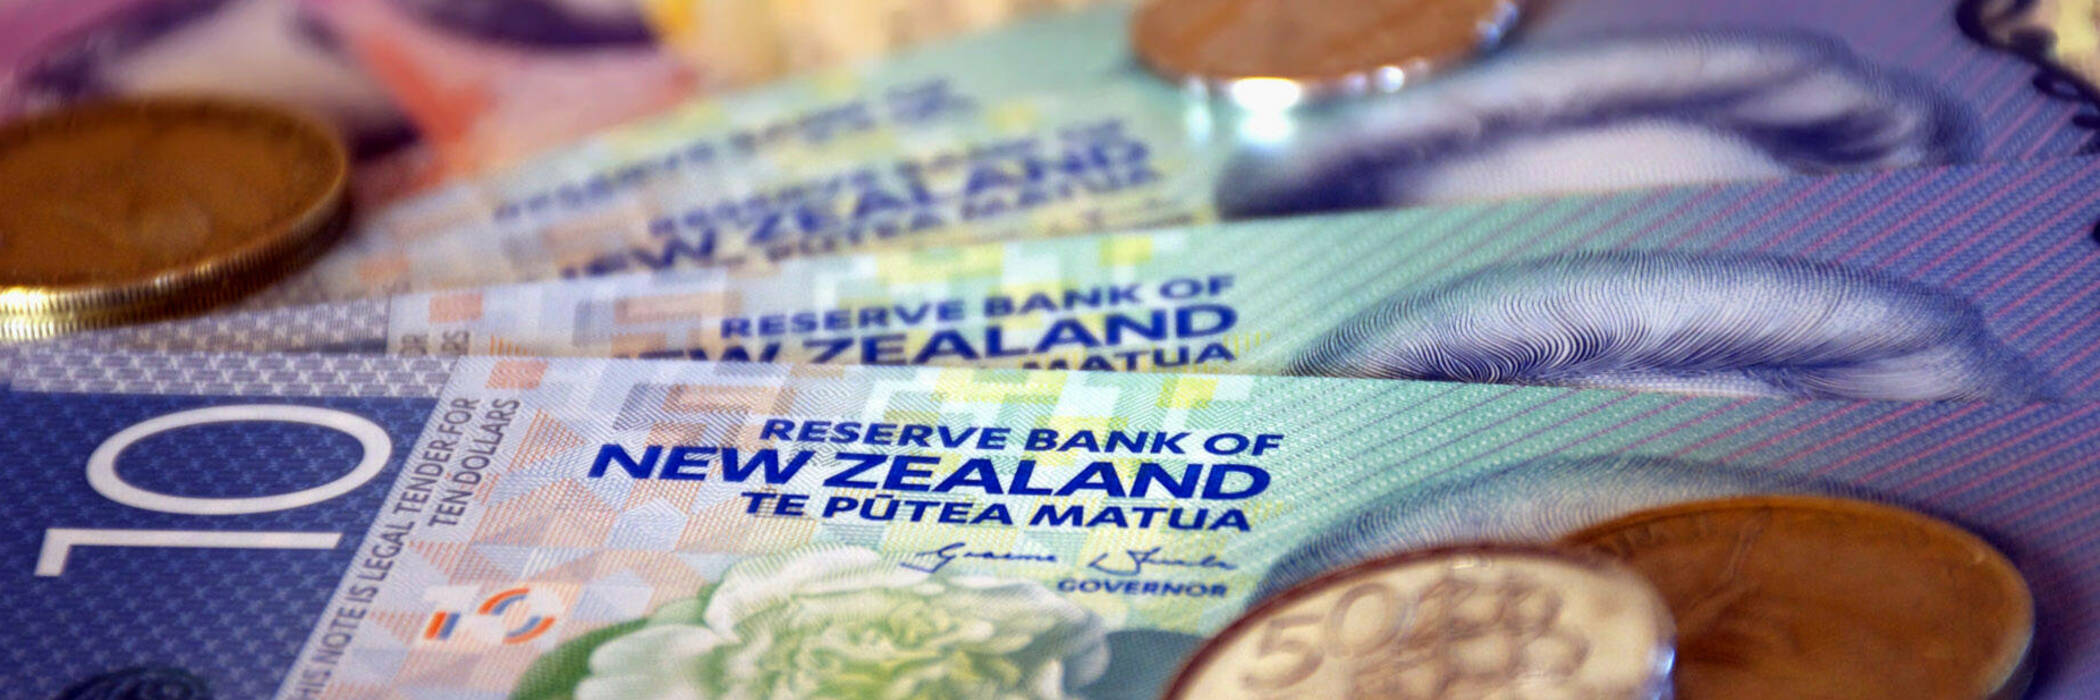 NZ notes and coins